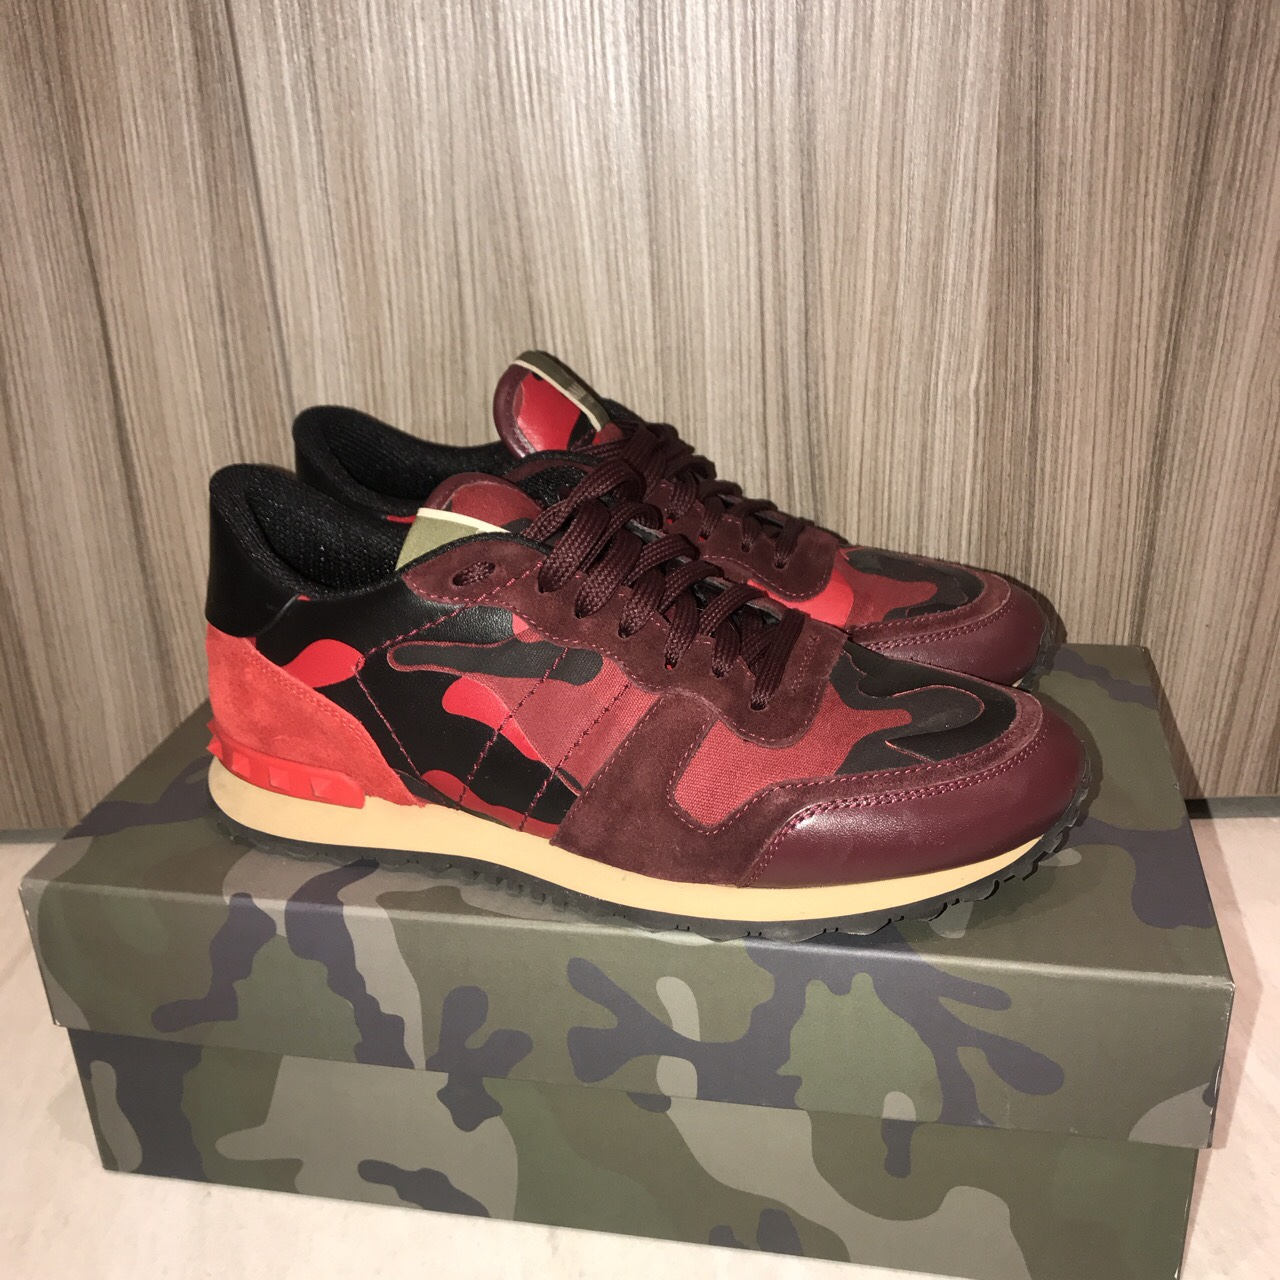 Red Valentino rock runners, worn a few